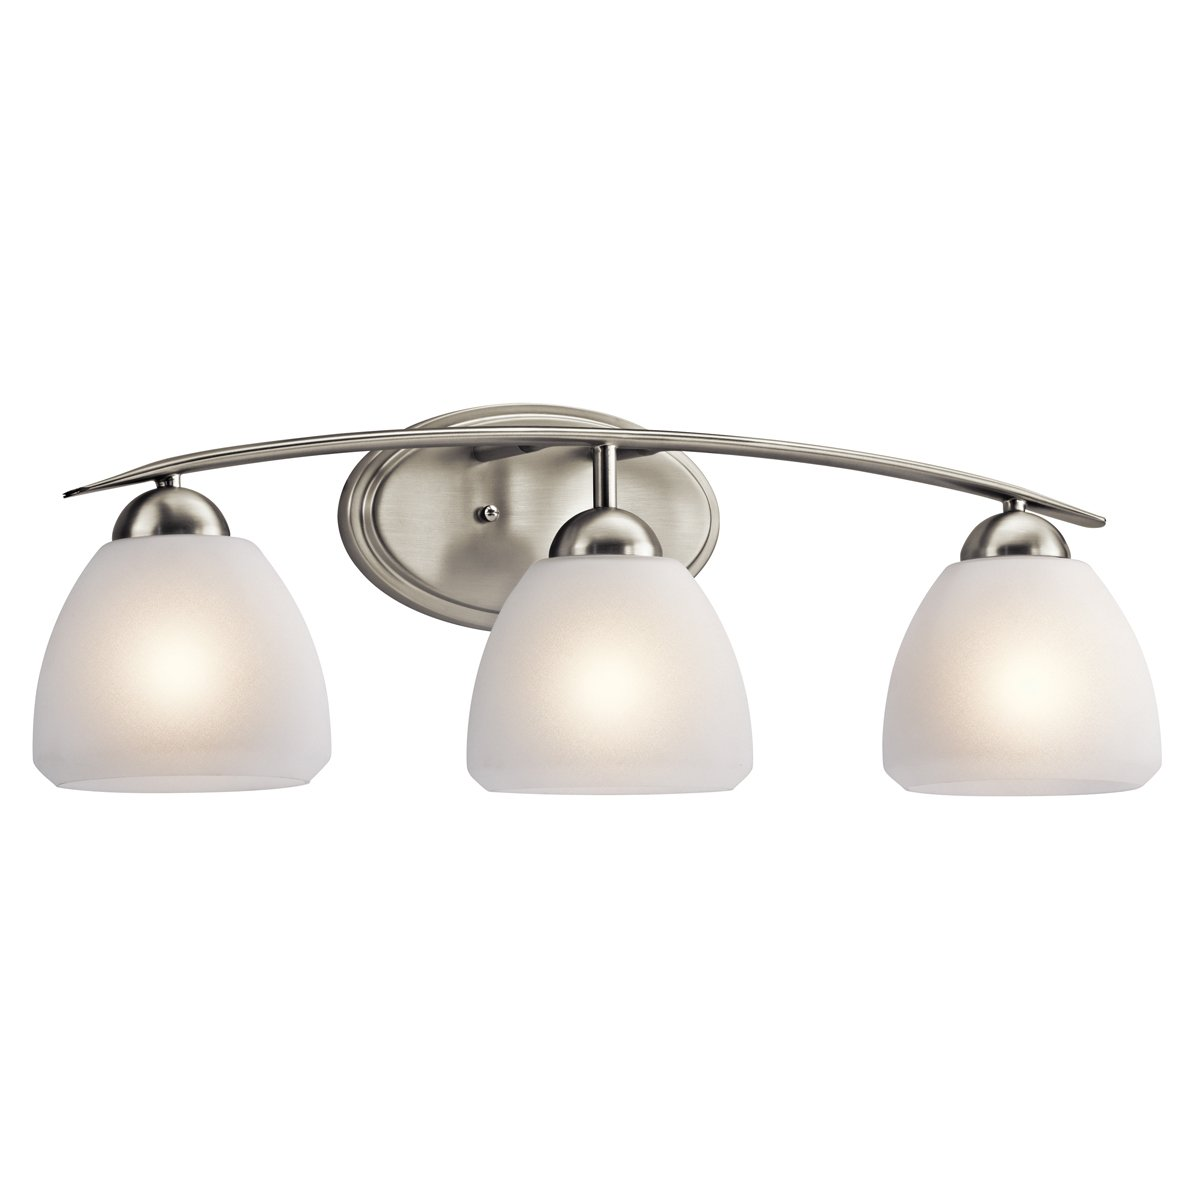 Kichler lighting 45119ni calleigh 3lt vanity fixture brushed nickel kichler lighting 45119ni calleigh 3lt vanity fixture brushed nickel finish with satin etched cased opal glass bathroom light fixtures amazon mozeypictures Image collections